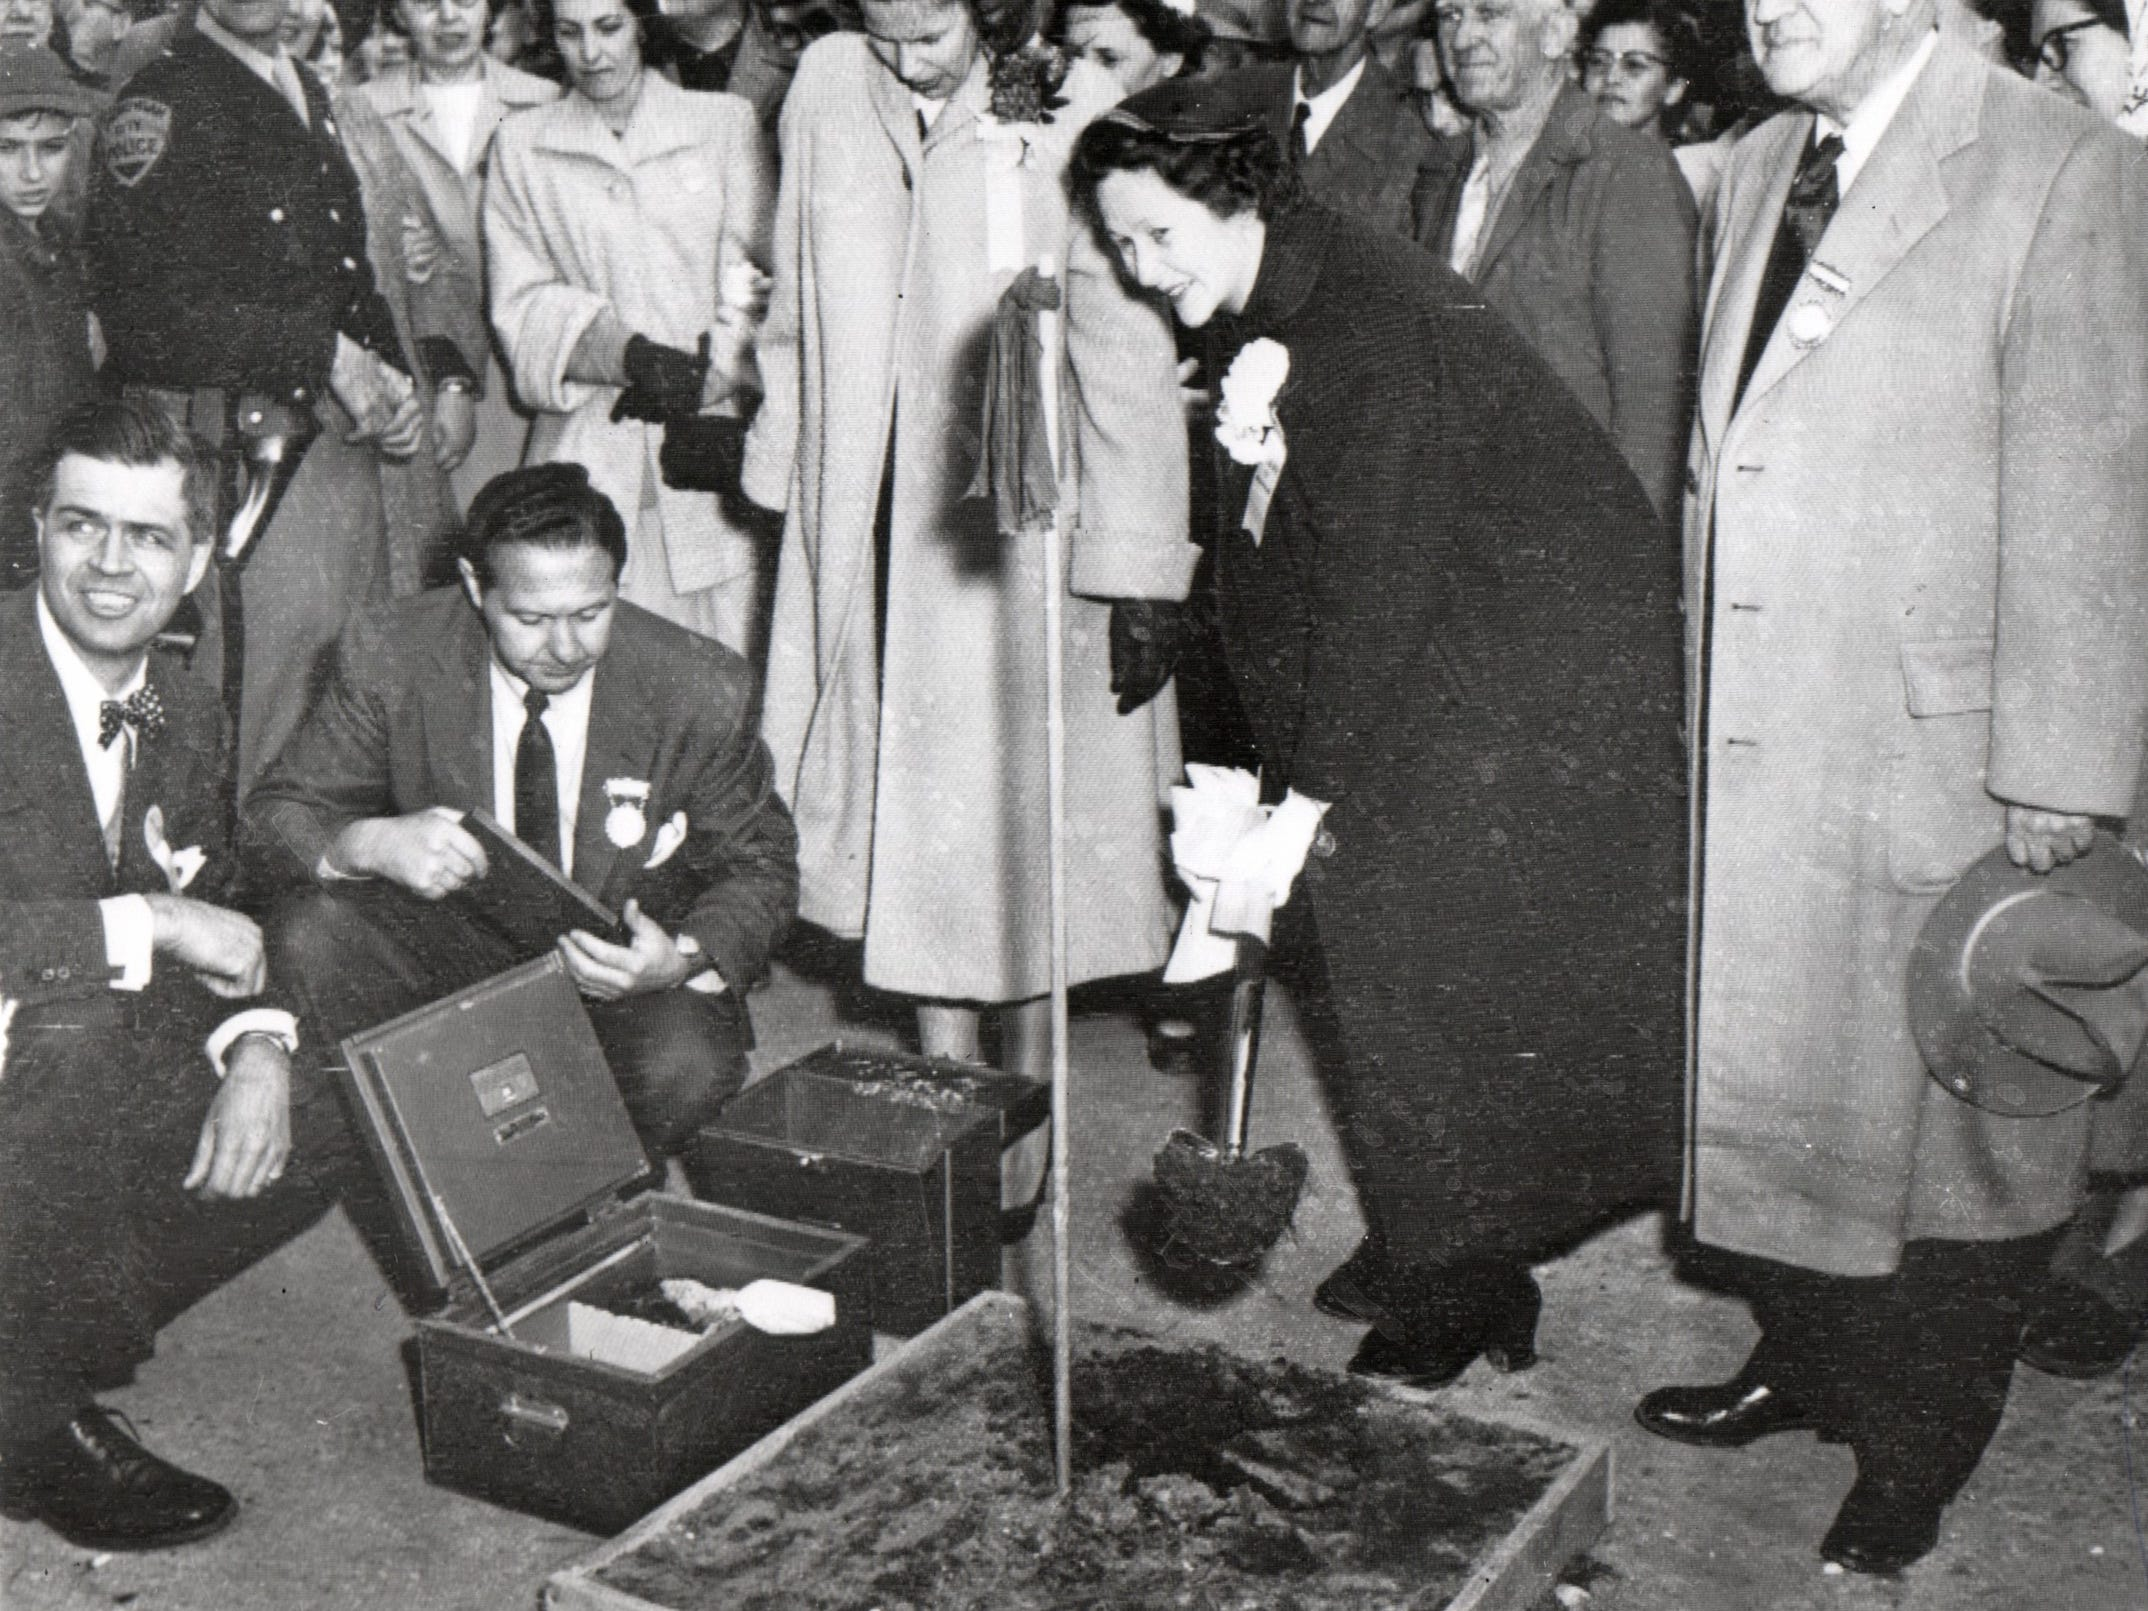 Mrs. Charles T. Fisher, Jr., wife of the bridge authority vice chairman, turns over the first spadeful of dirt during ground-breaking ceremonies here Sat. May 8, 1954. \ (L-R) Gov. G. Mennen Williams; Lawrence Rubin, bridge authority secretary; Nancy Williams, Mrs. Fisher, Detroit, and Prentiss M. Brown, Chairman, bridge authority.